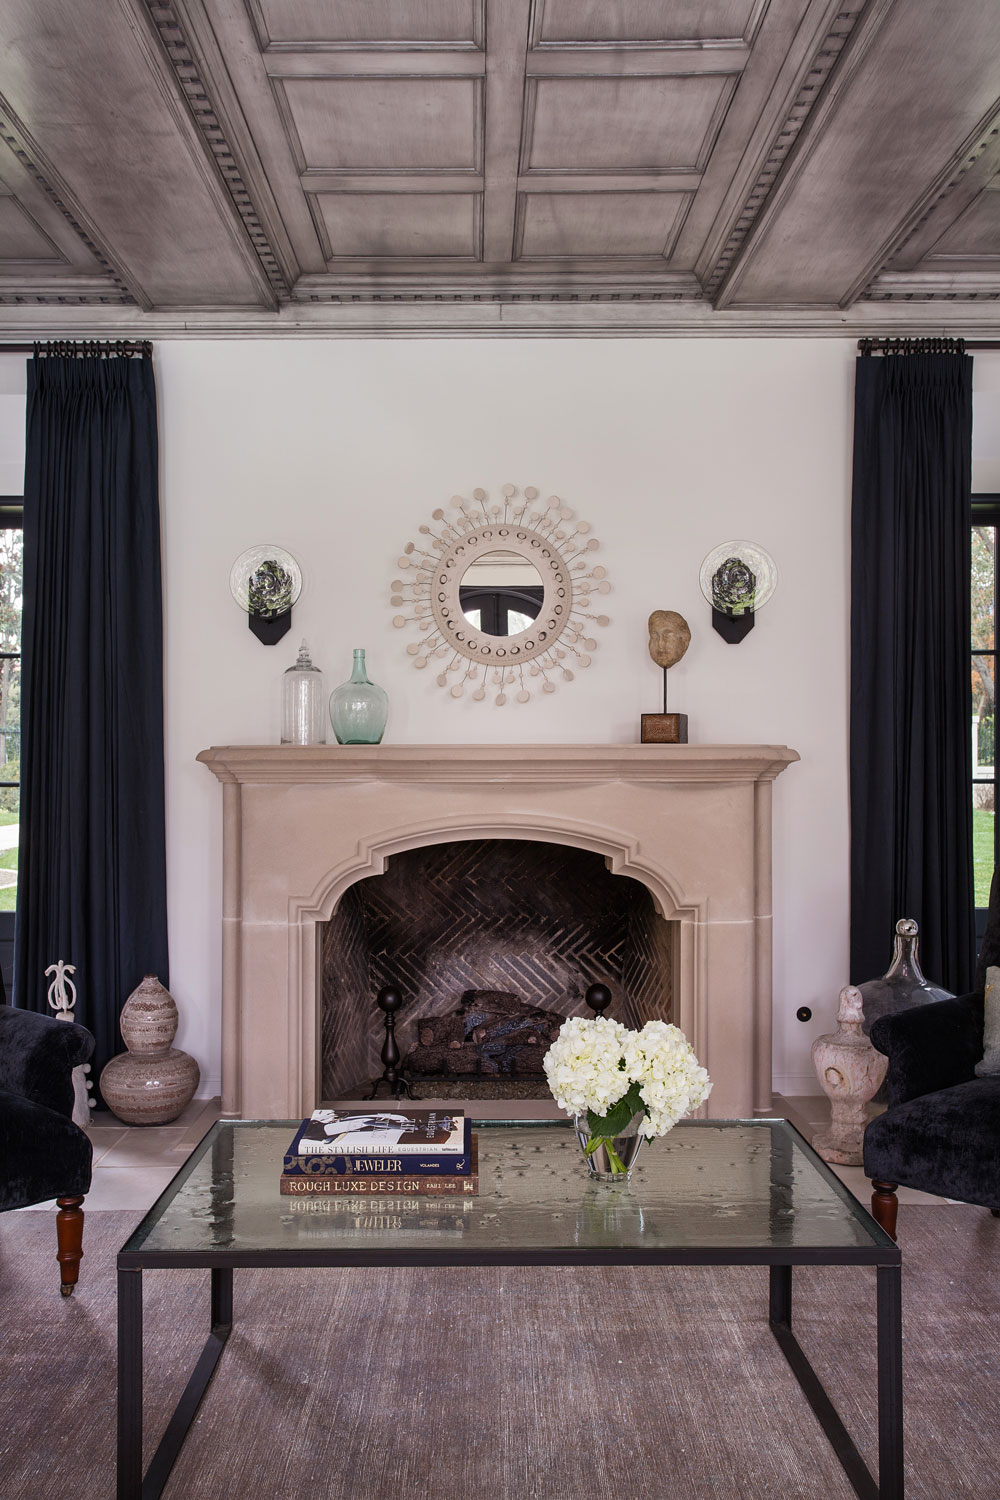 decorative-fireplace-surround-ceiling-paneling-chelsea-construction.jpg